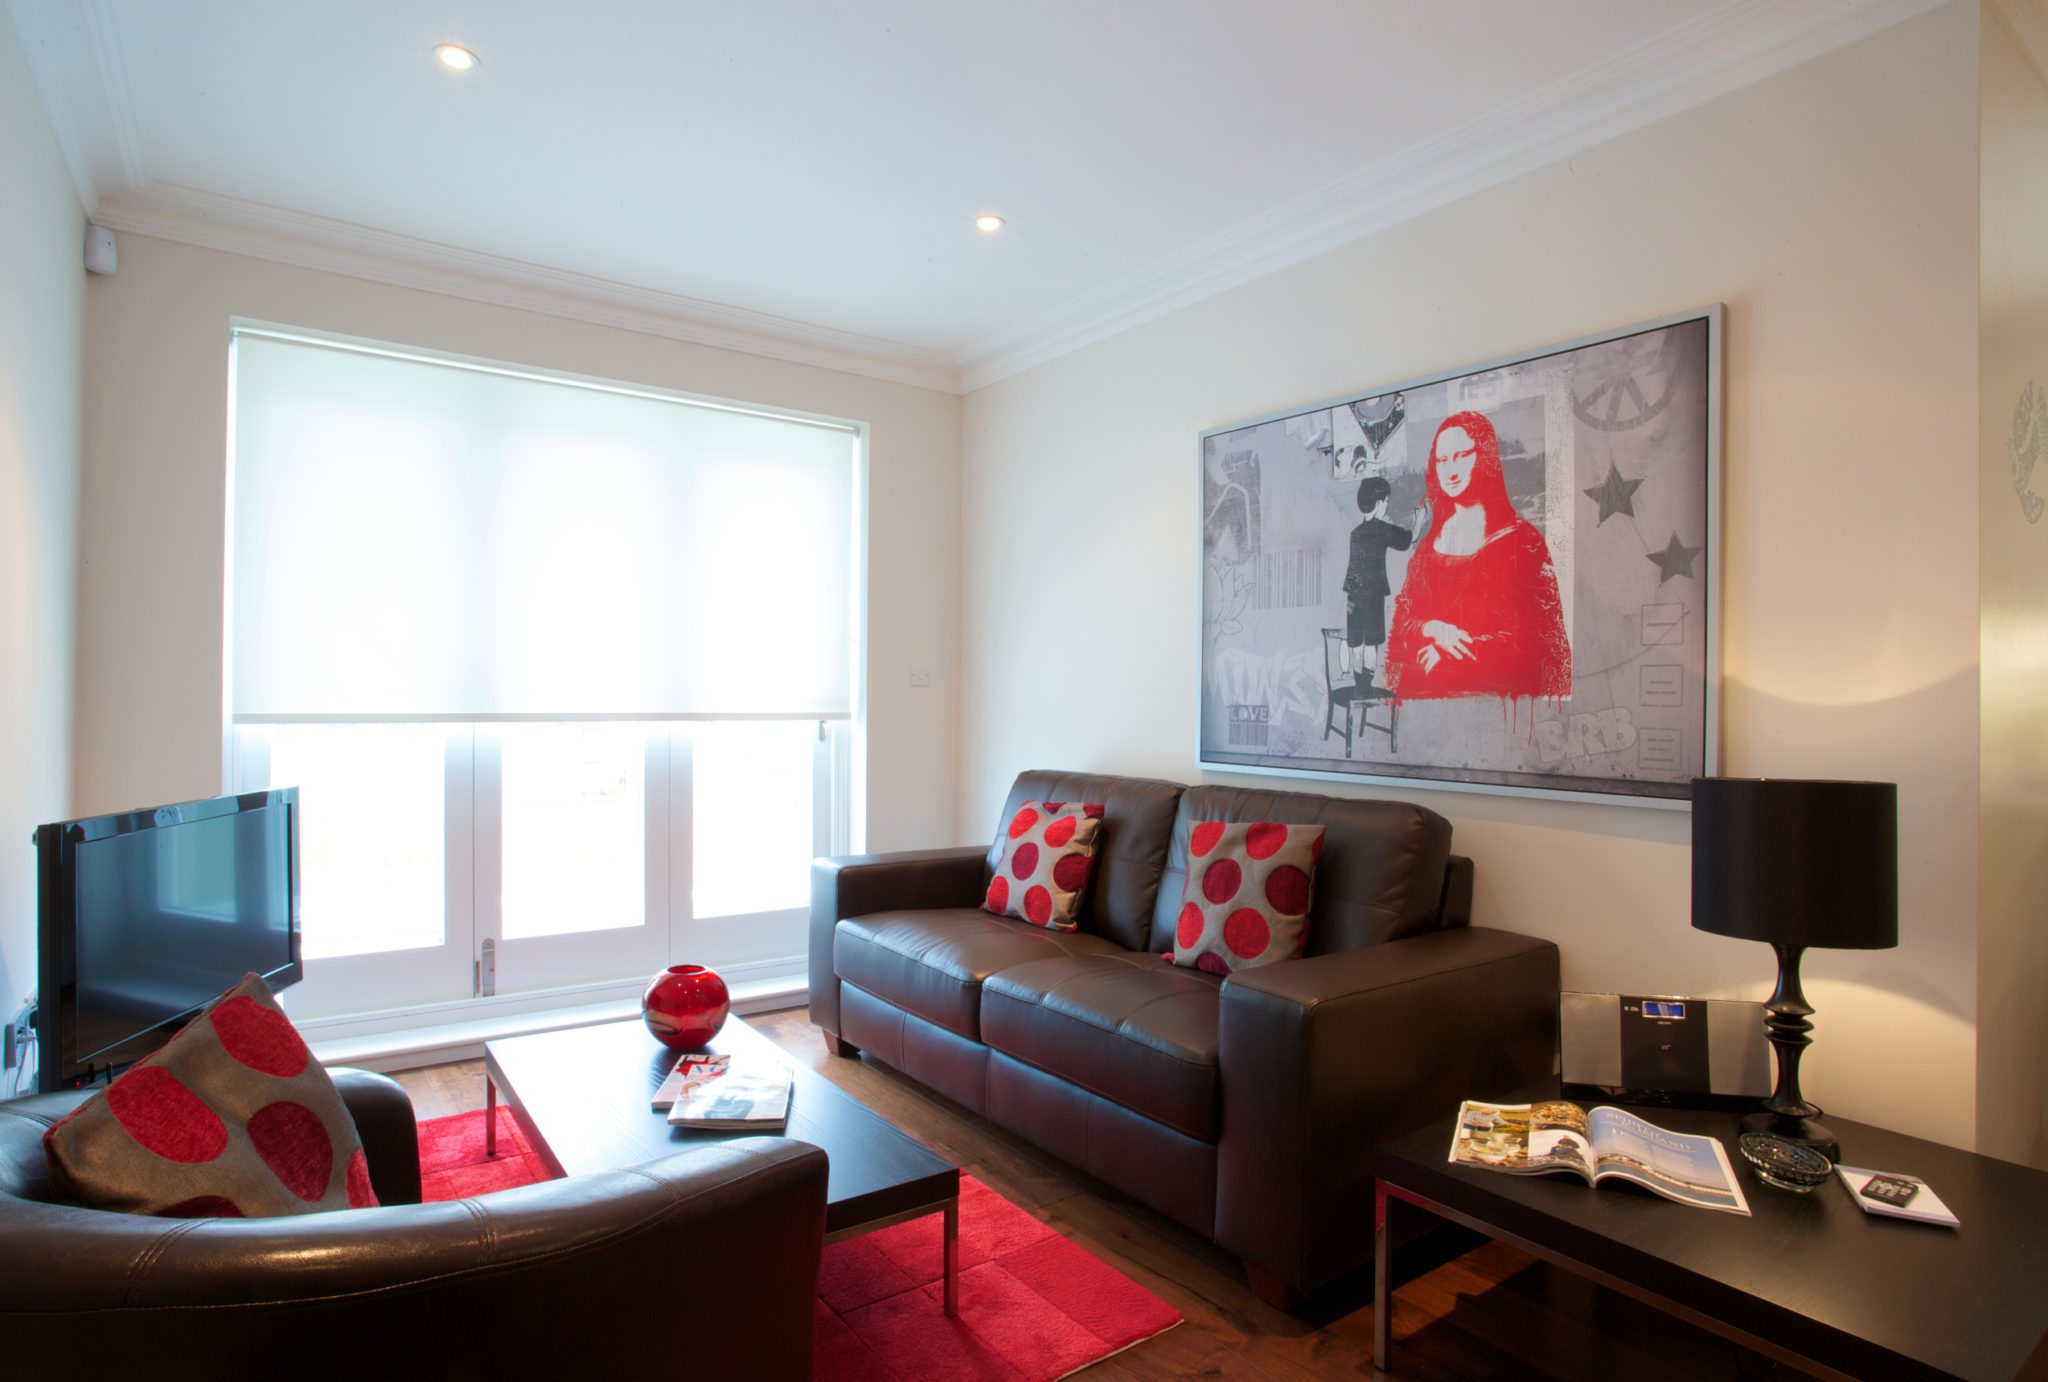 Short Stay Apartments Ealing West London Accommodation